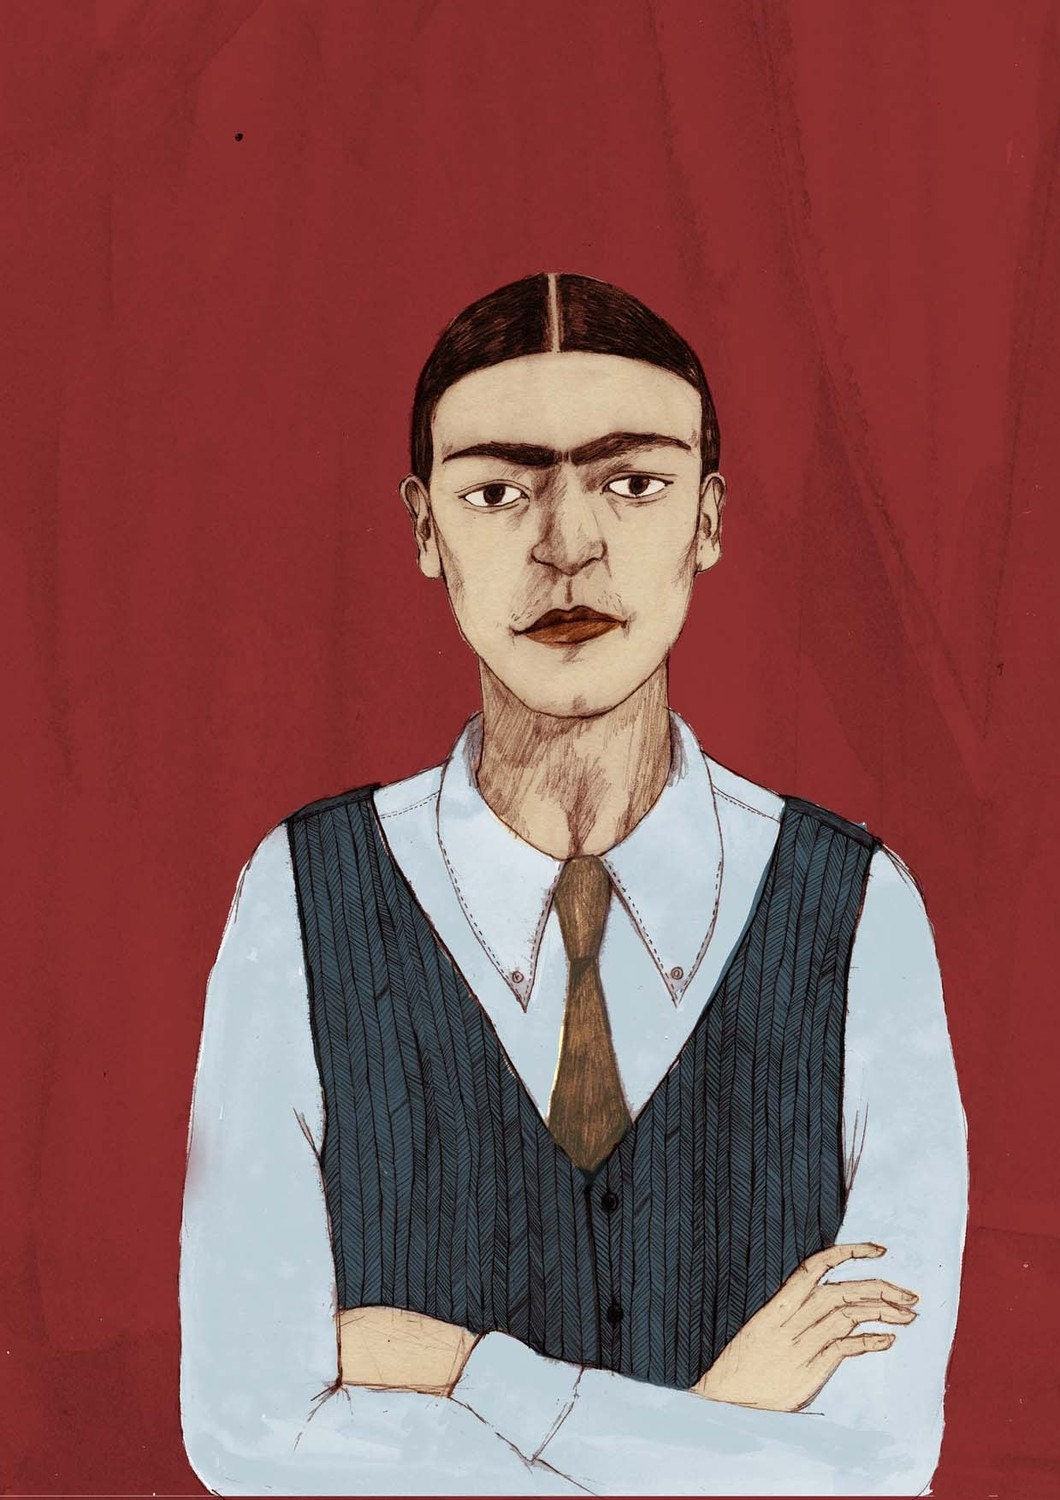 Extra Large Frida Kahlo 'Androgyny' Limited Edition A2 Giclee Print by Bett Norris